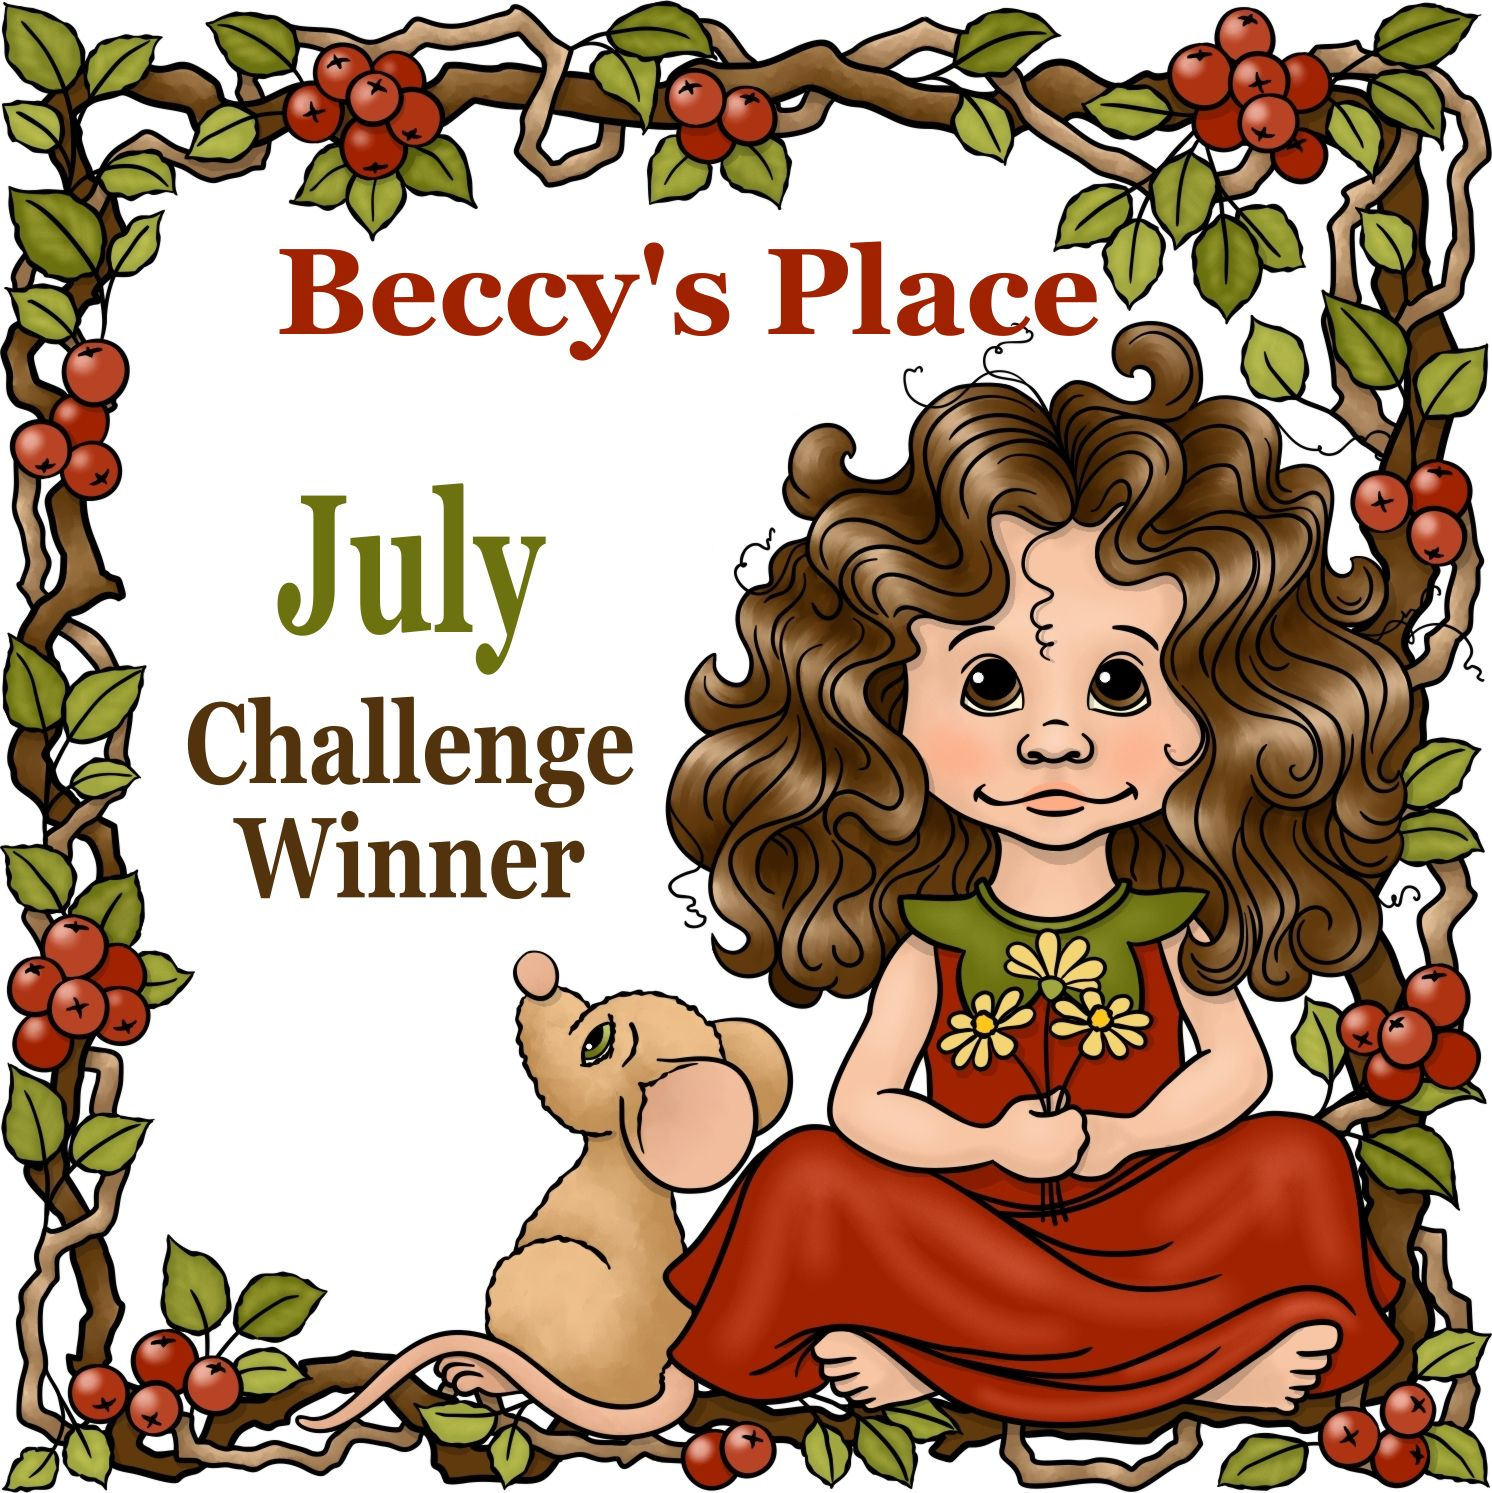 Beccy's Place: July